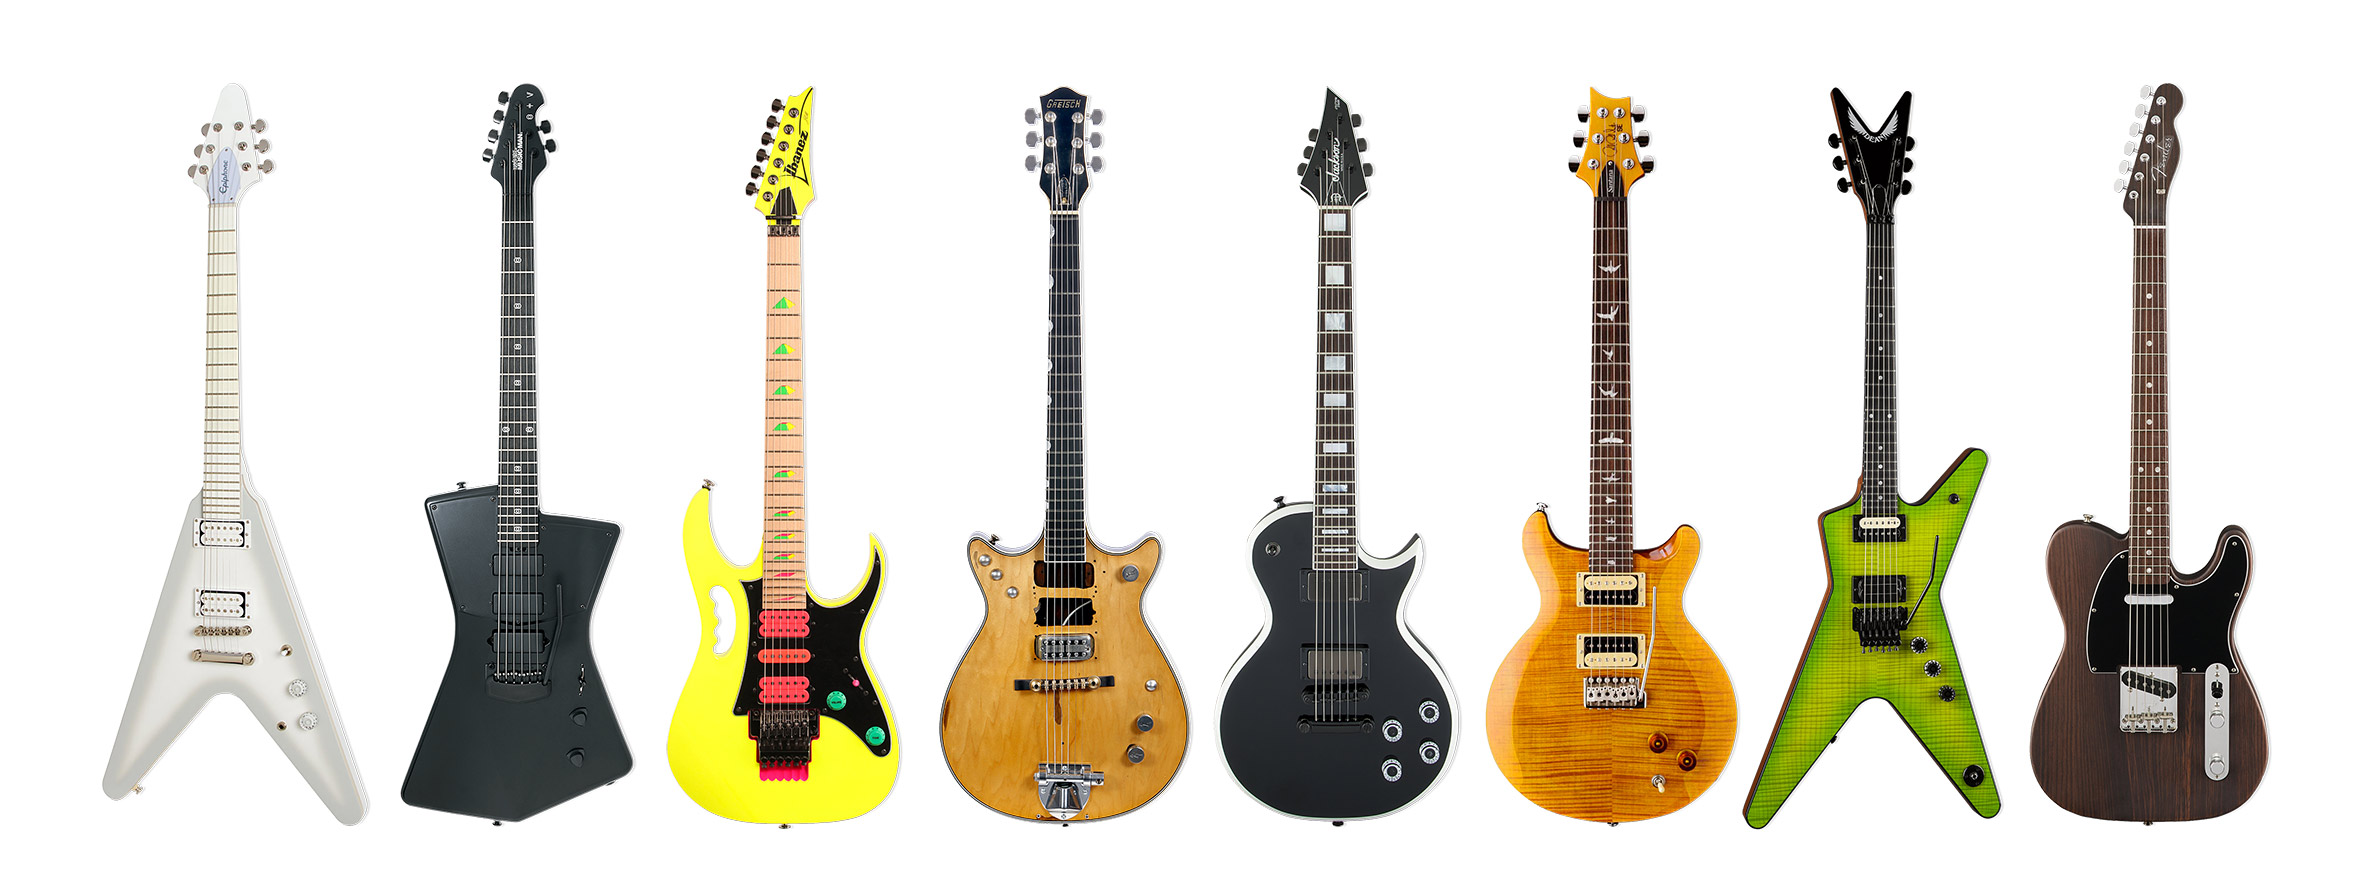 Guitar of the Year 2017 artist signature category